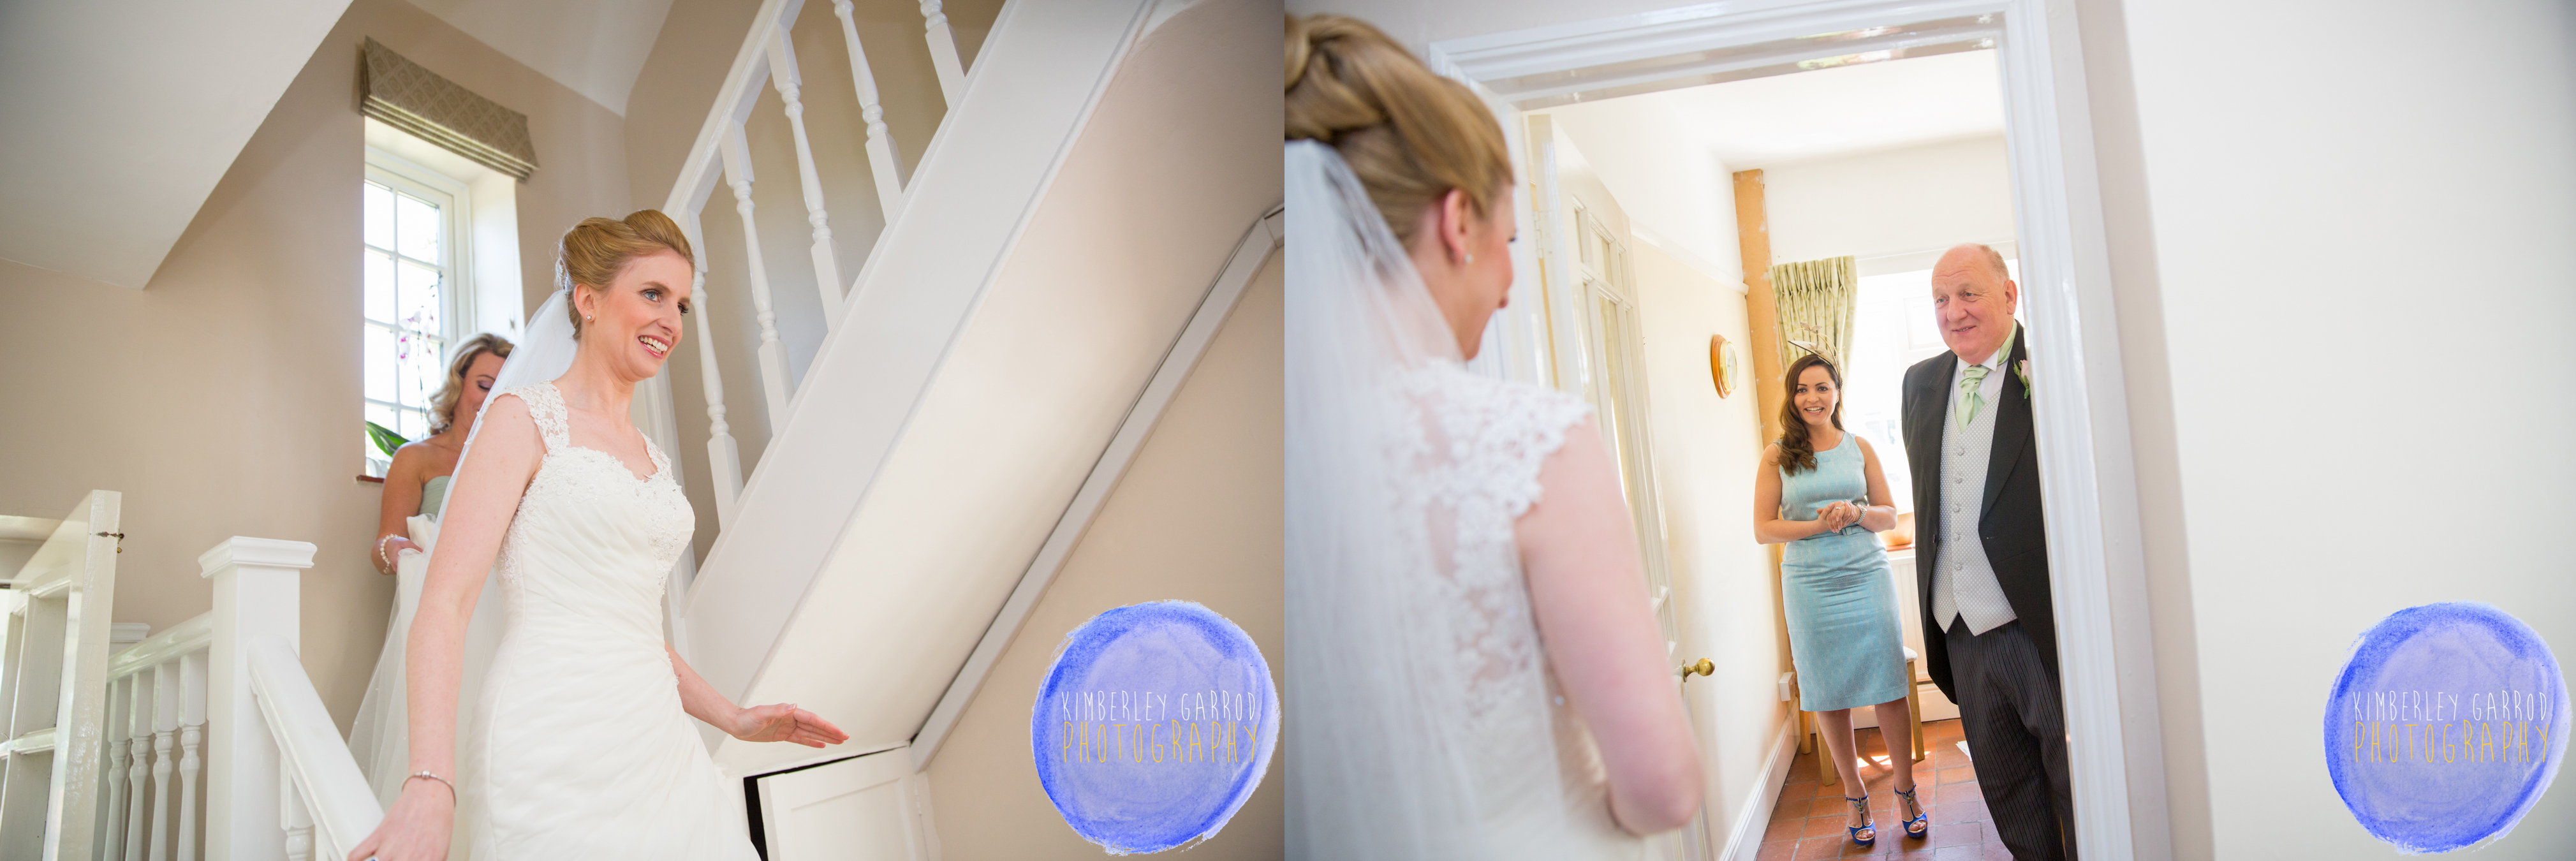 Getting Ready wedding Photographs Wickham Southampton